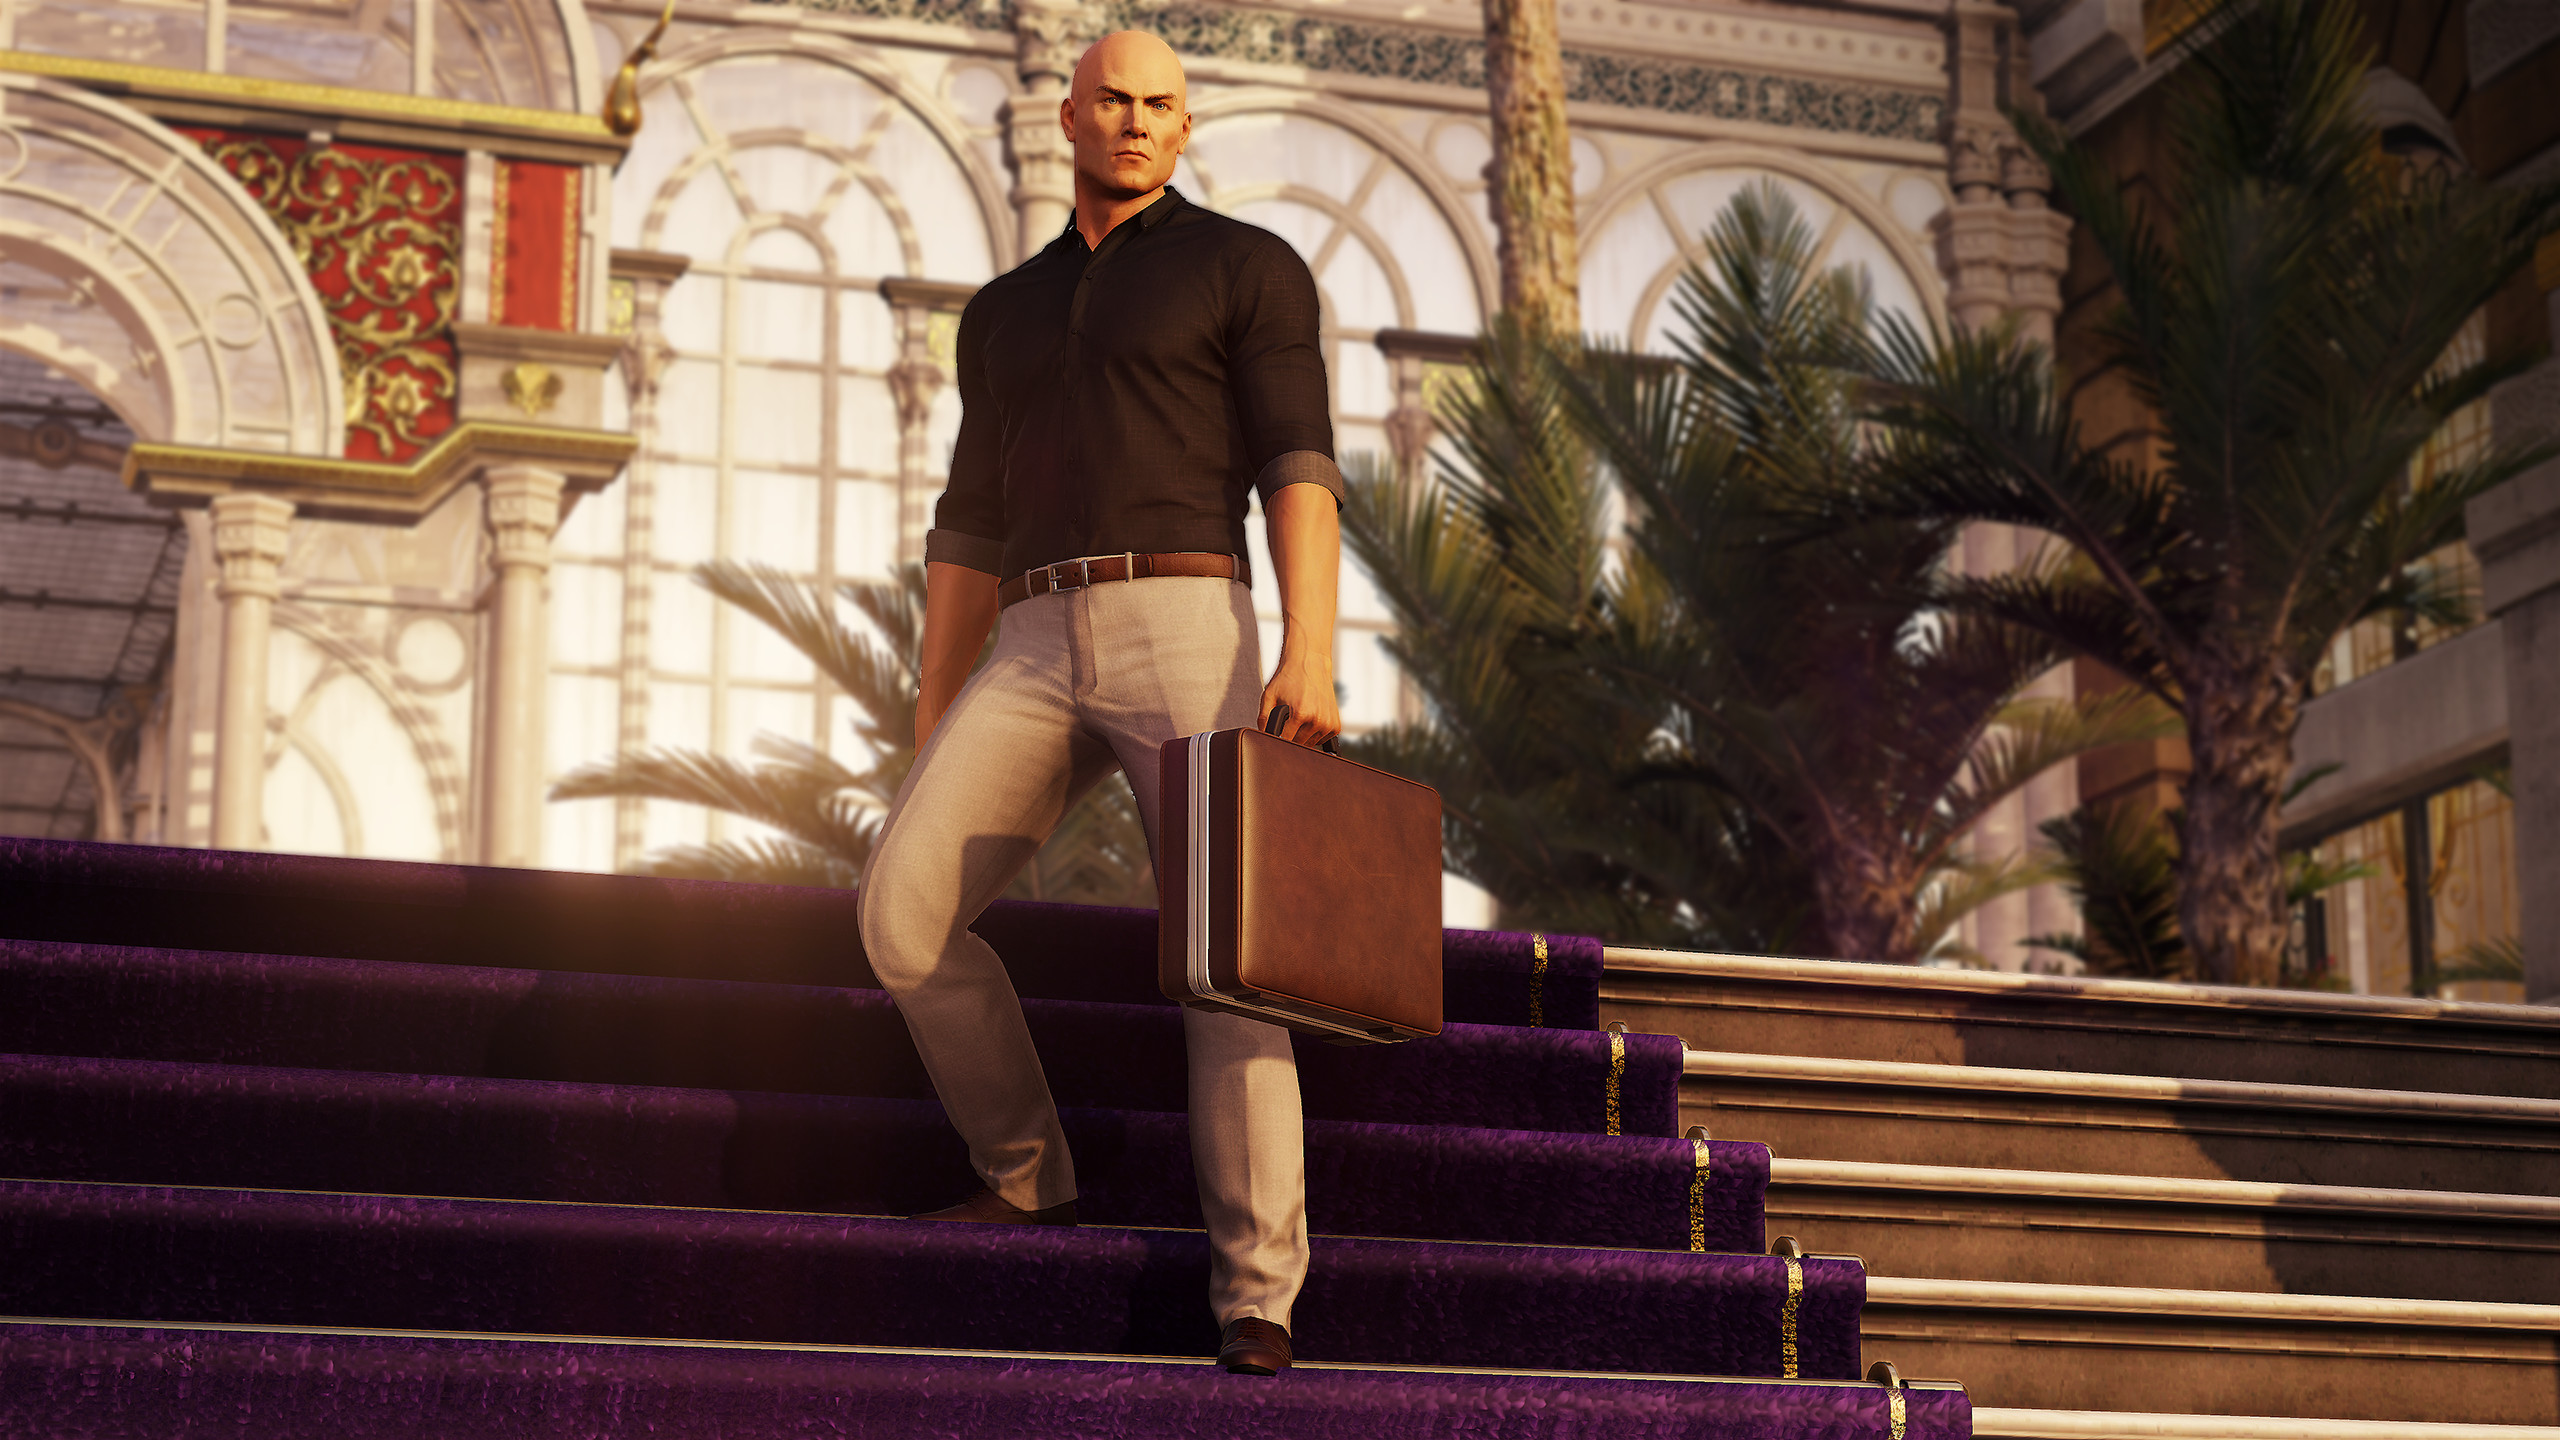 We'll never forget Hitman 2's most legendary weapon: the homing briefcase